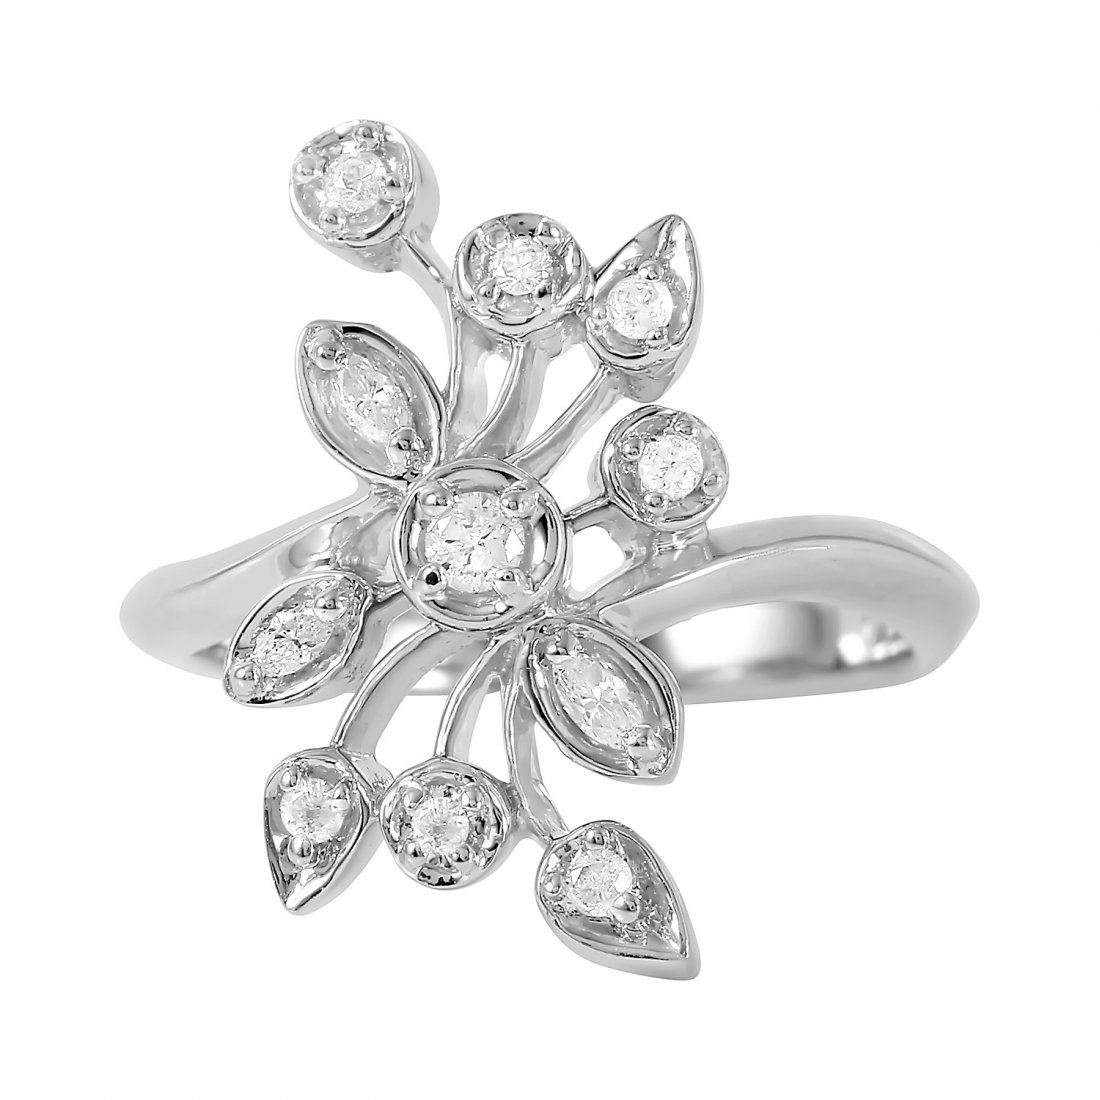 10K White Gold Diamond Ring - 2